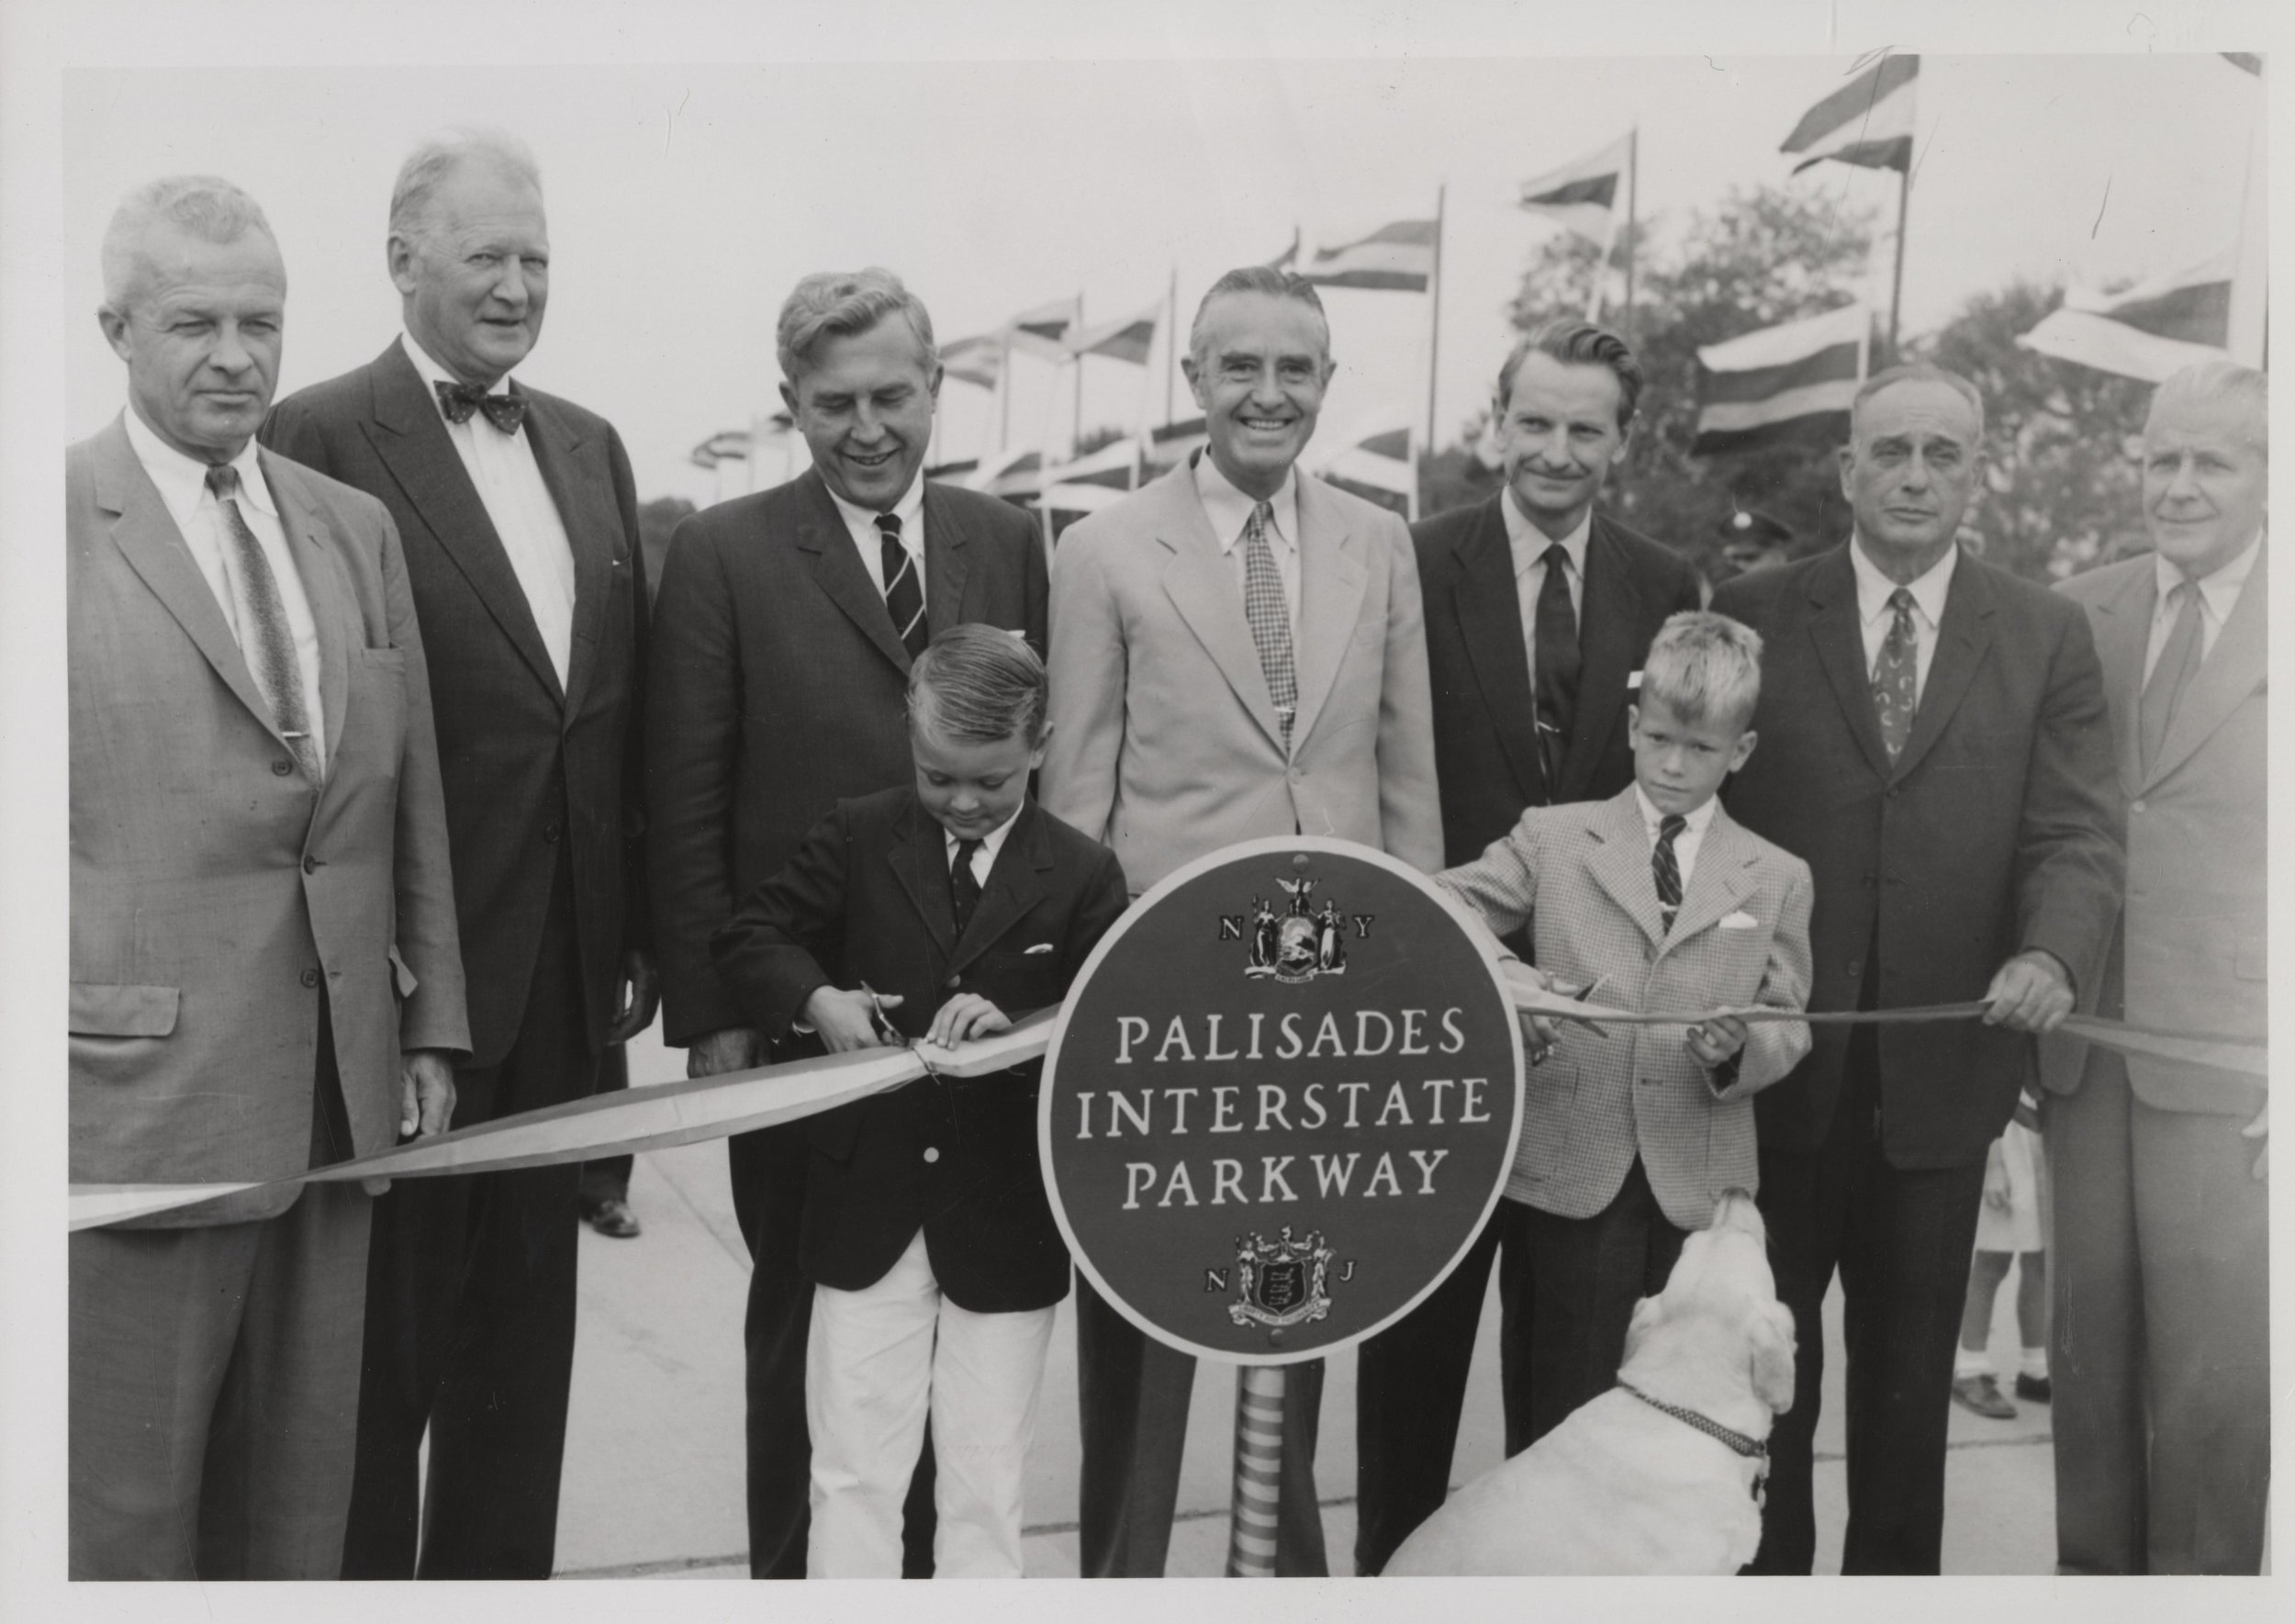 1958 - Dedication of the Palisades Interstate Parkway provided a scenic 42-mile ride from the George Washington Bridge to the Bear Mountain Bridge.